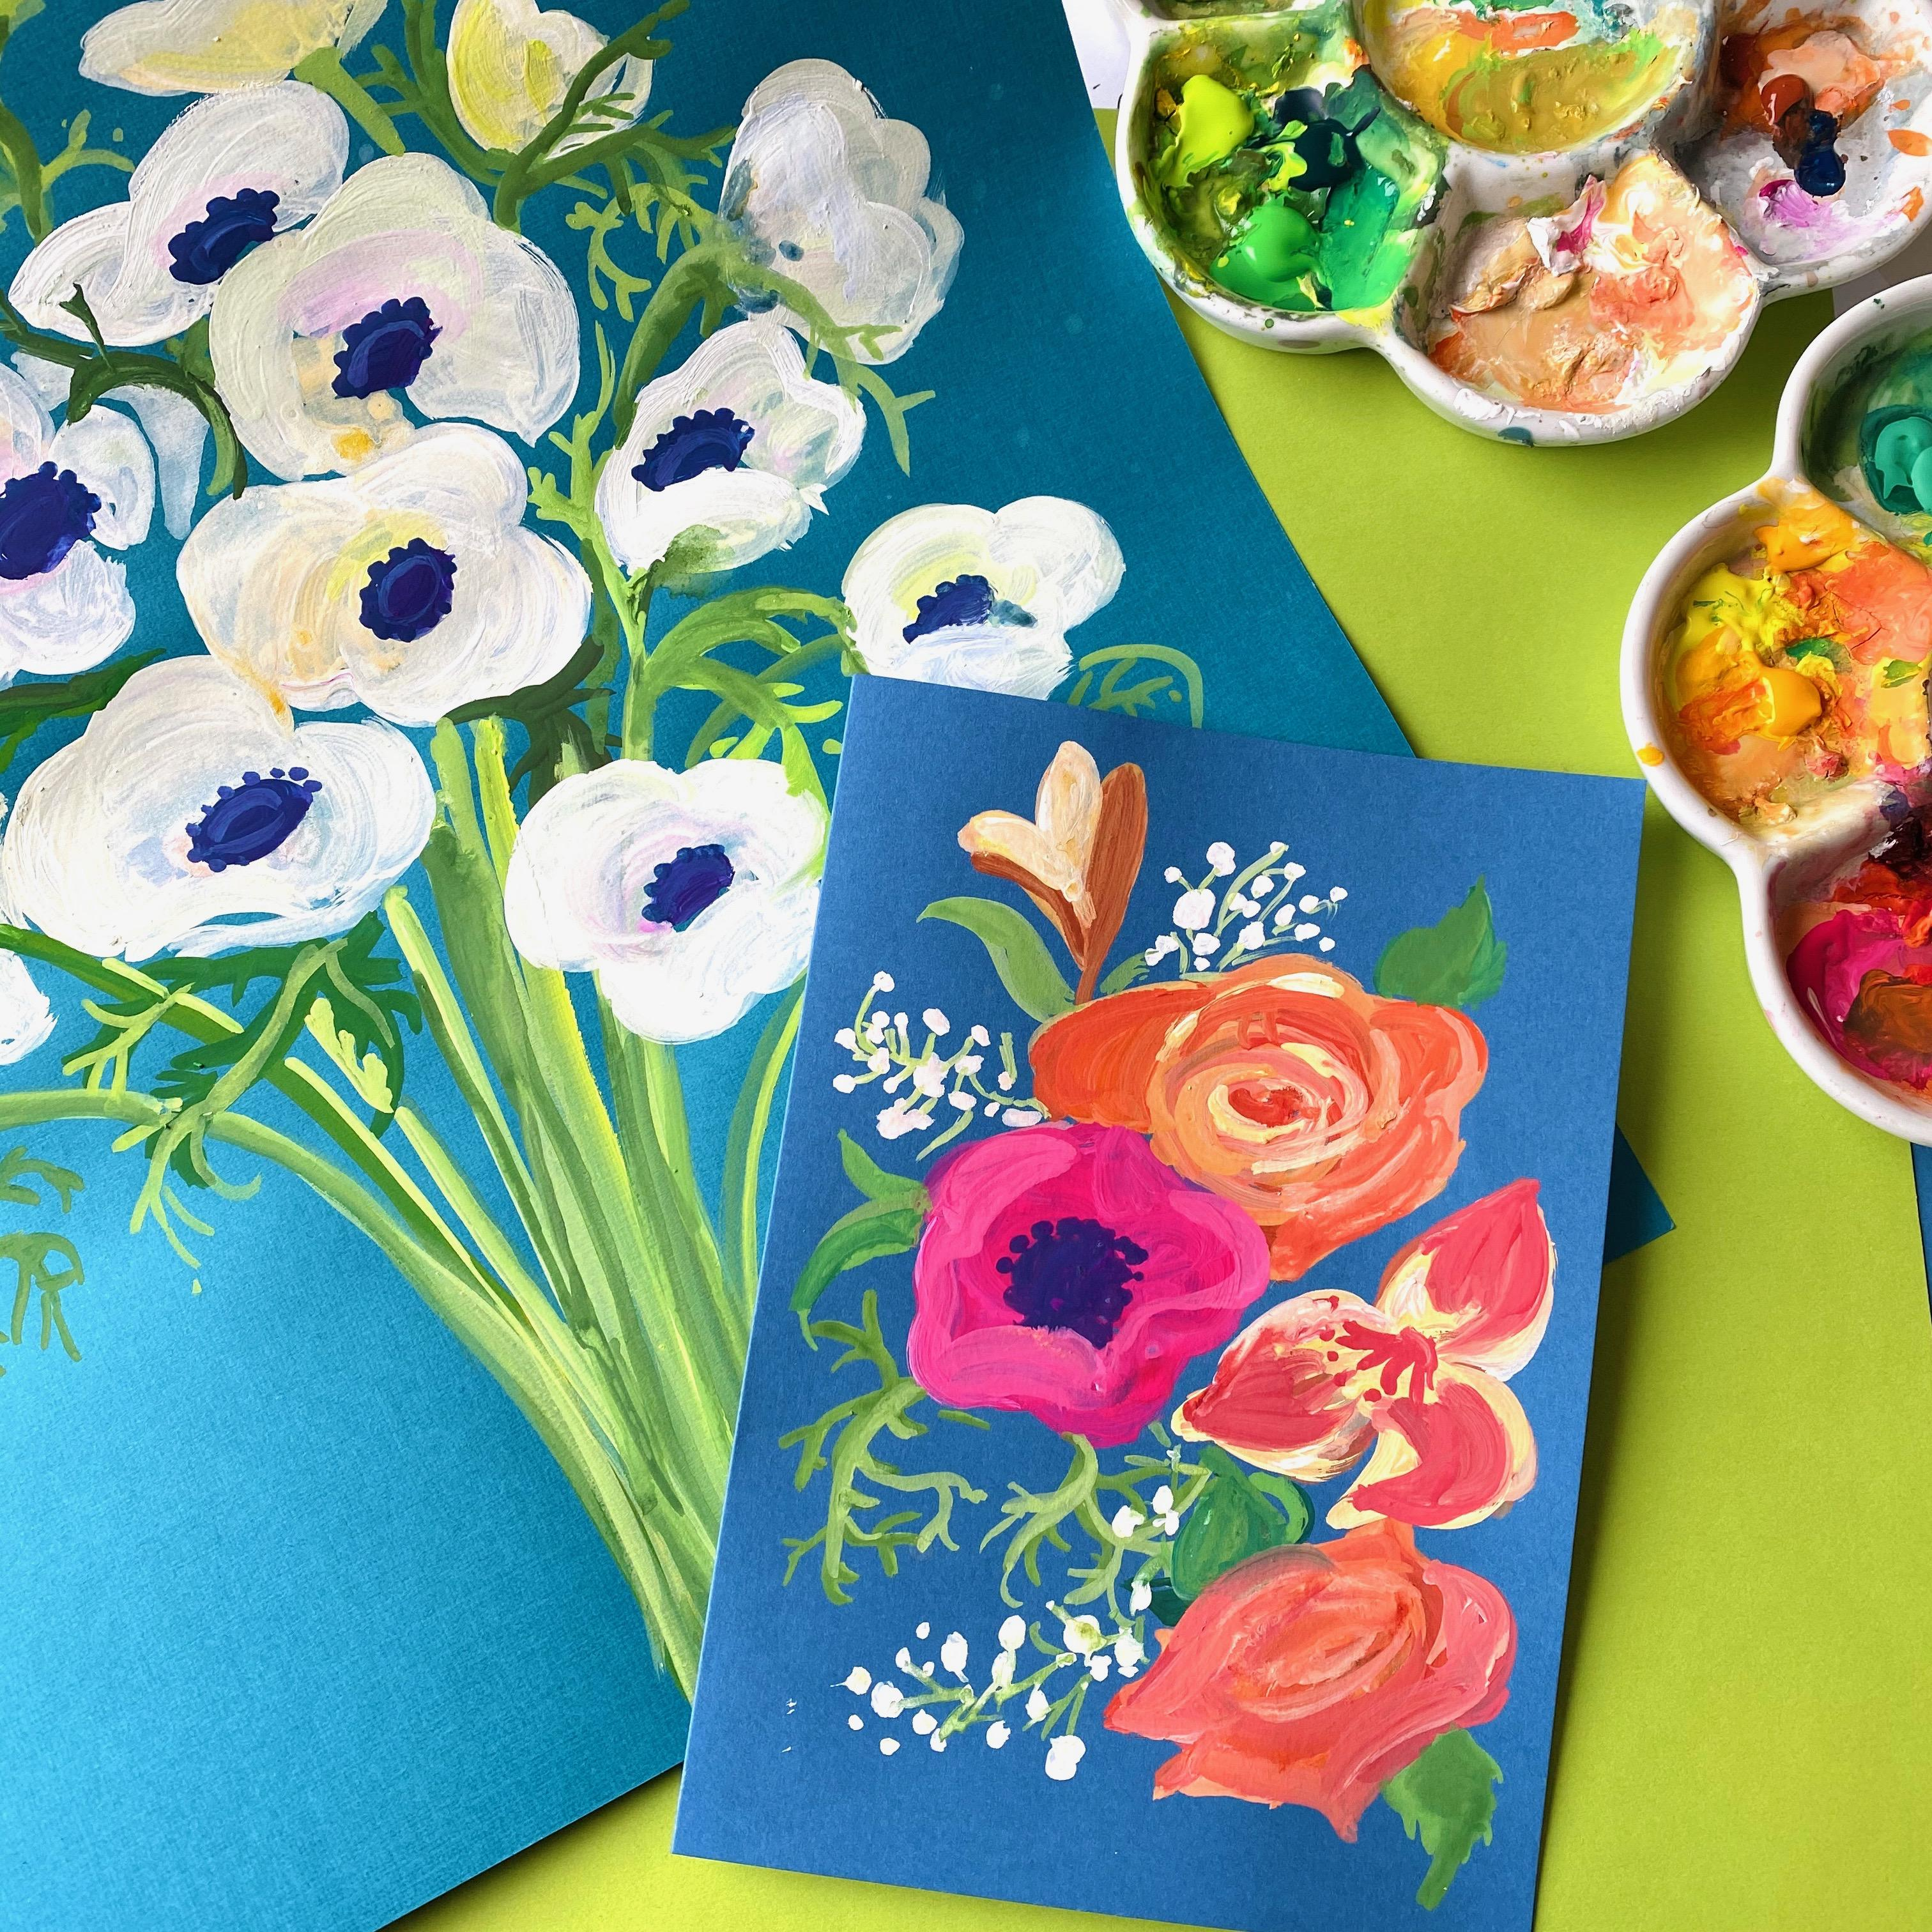 Drink & Draw - Say it with Flowers!